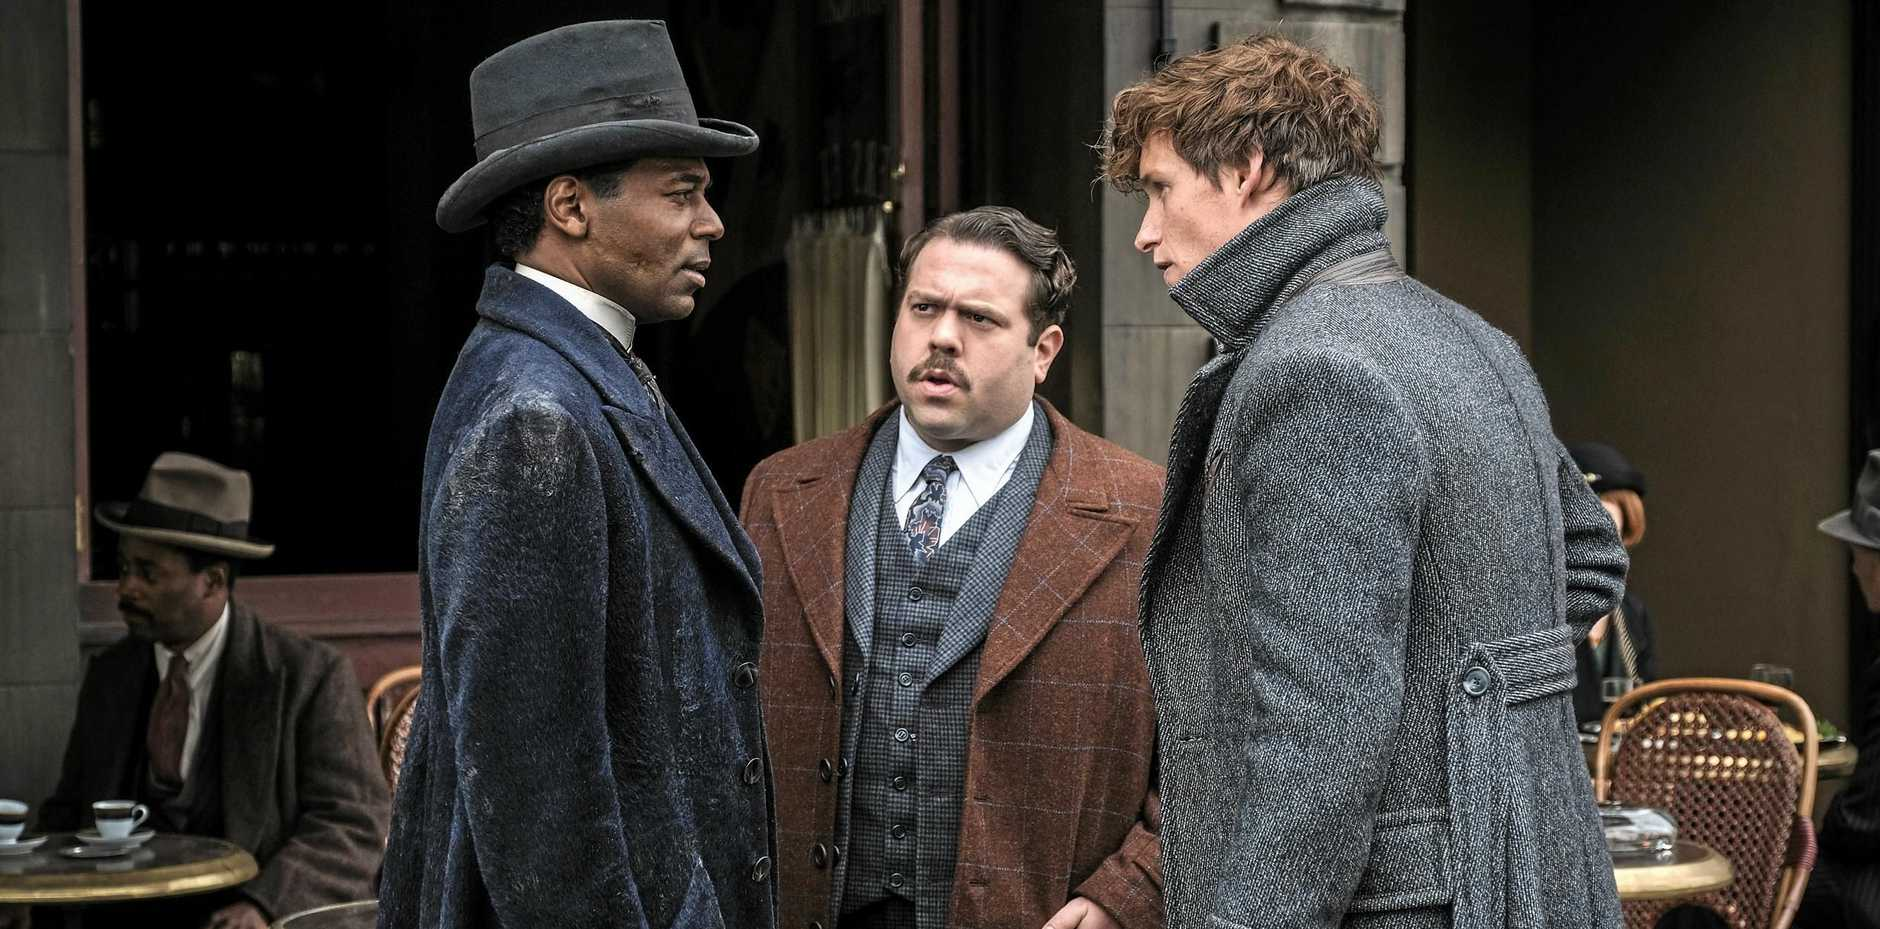 William Nadylam, Dan Fogler and Eddie Redmayne in a scene from the movie Fantastic Beasts: The Crimes of Grindelwald.